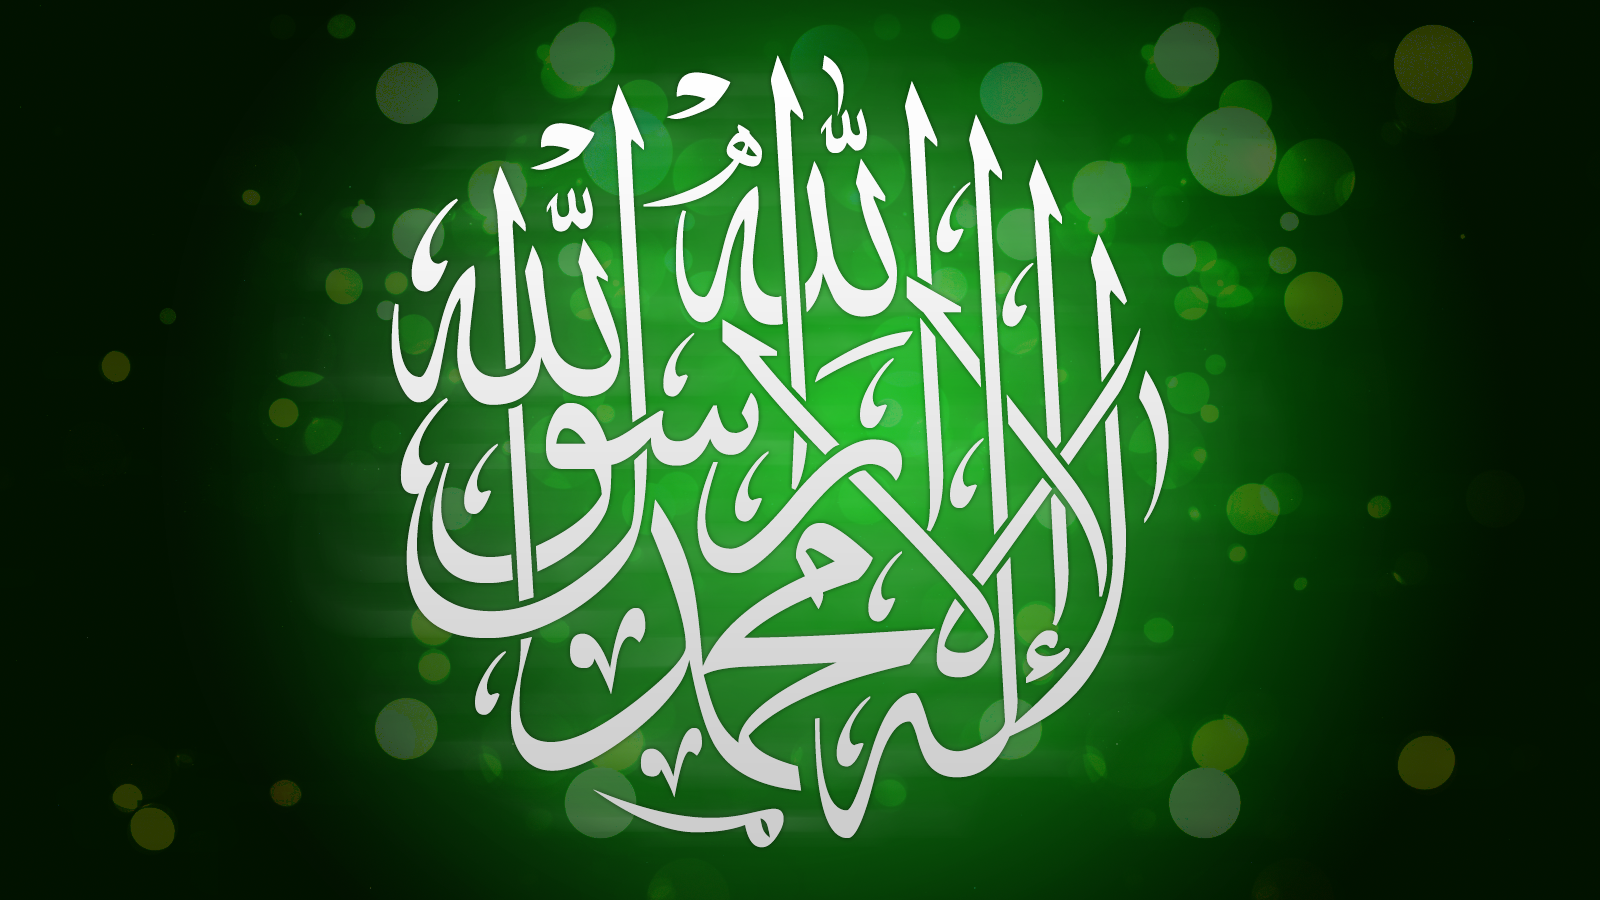 Islamic software wallpaper greetings download